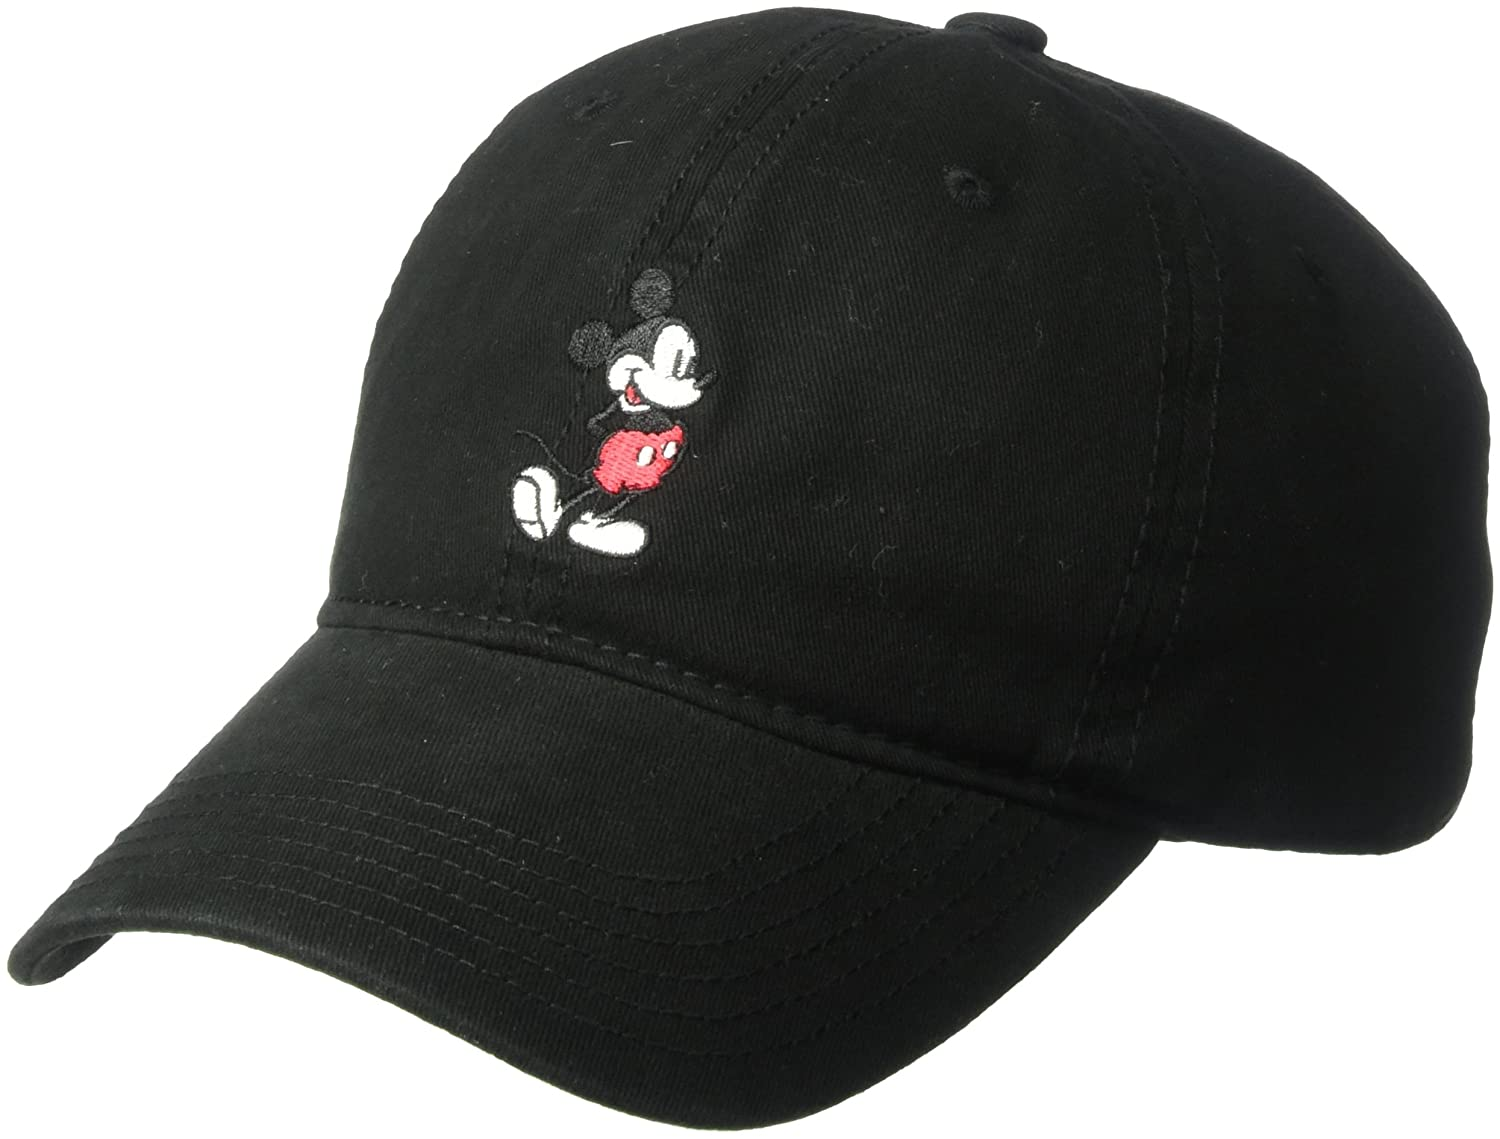 889a8164ed2 Amazon.com  Disney Men s Mickey Washed Twill Baseball Cap ...